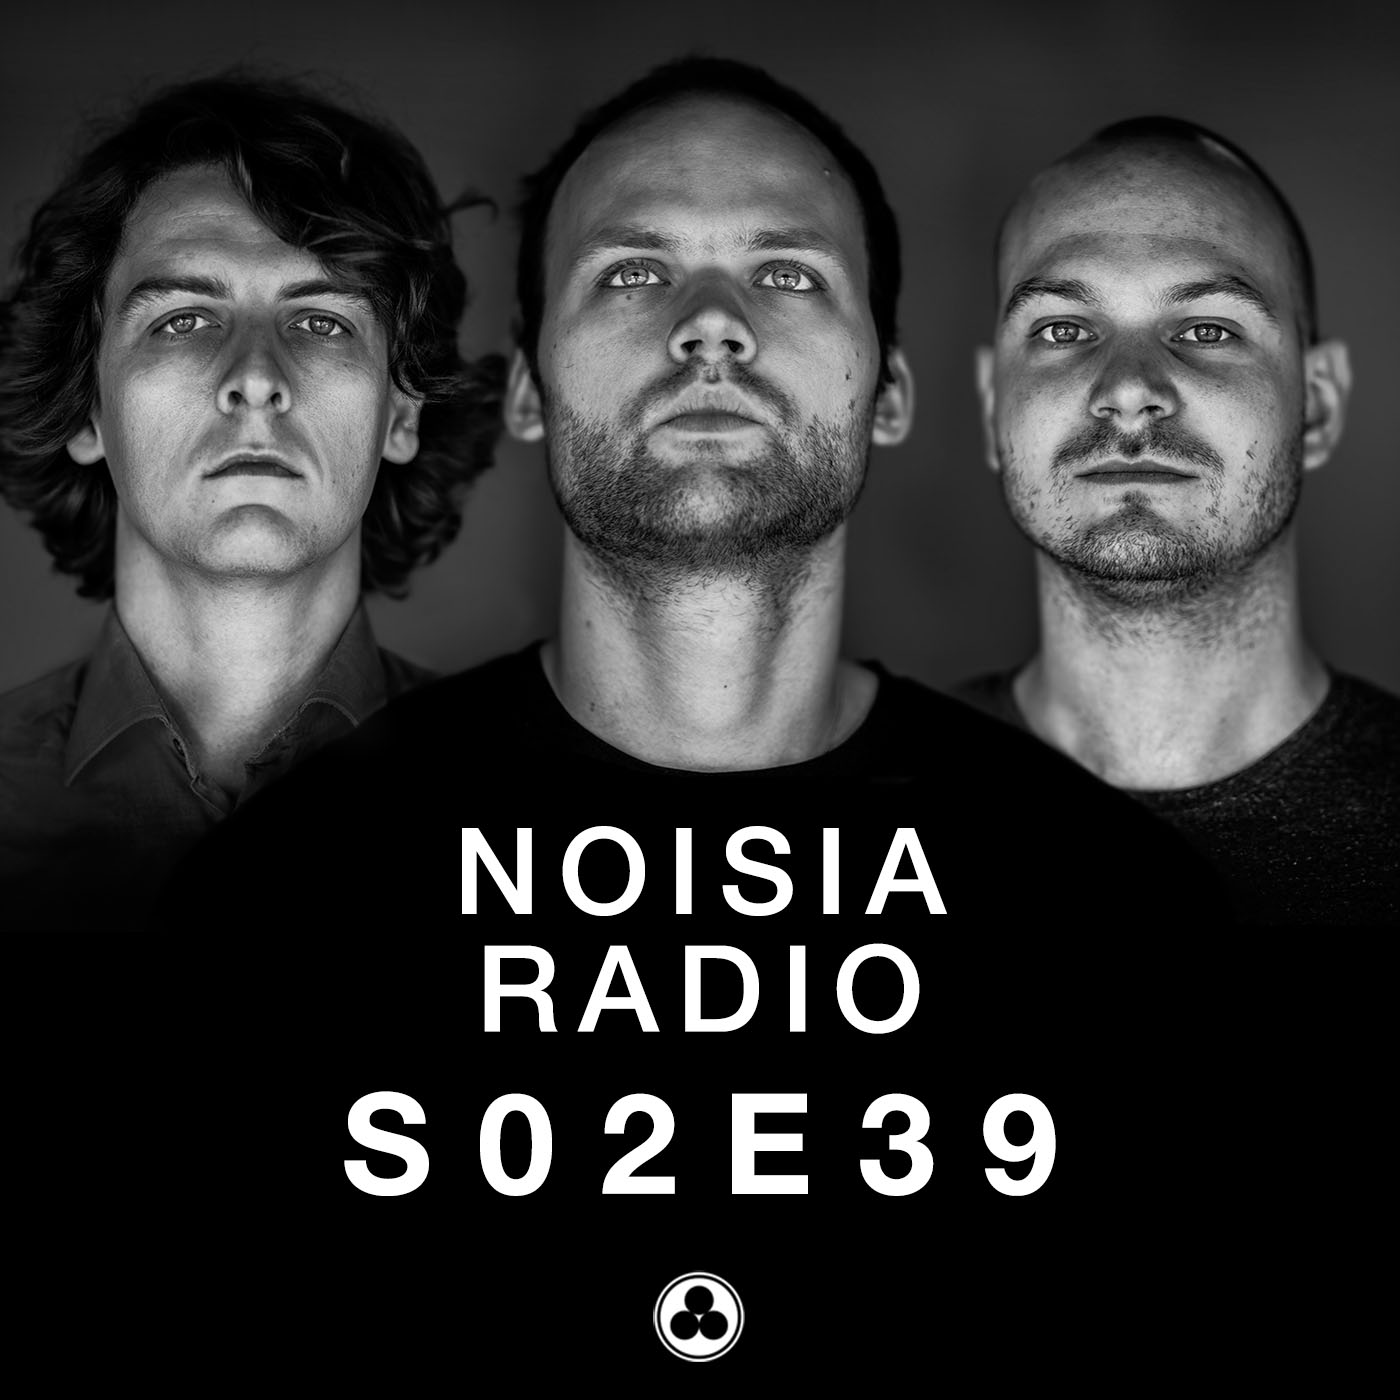 Noisia Radio S02E39